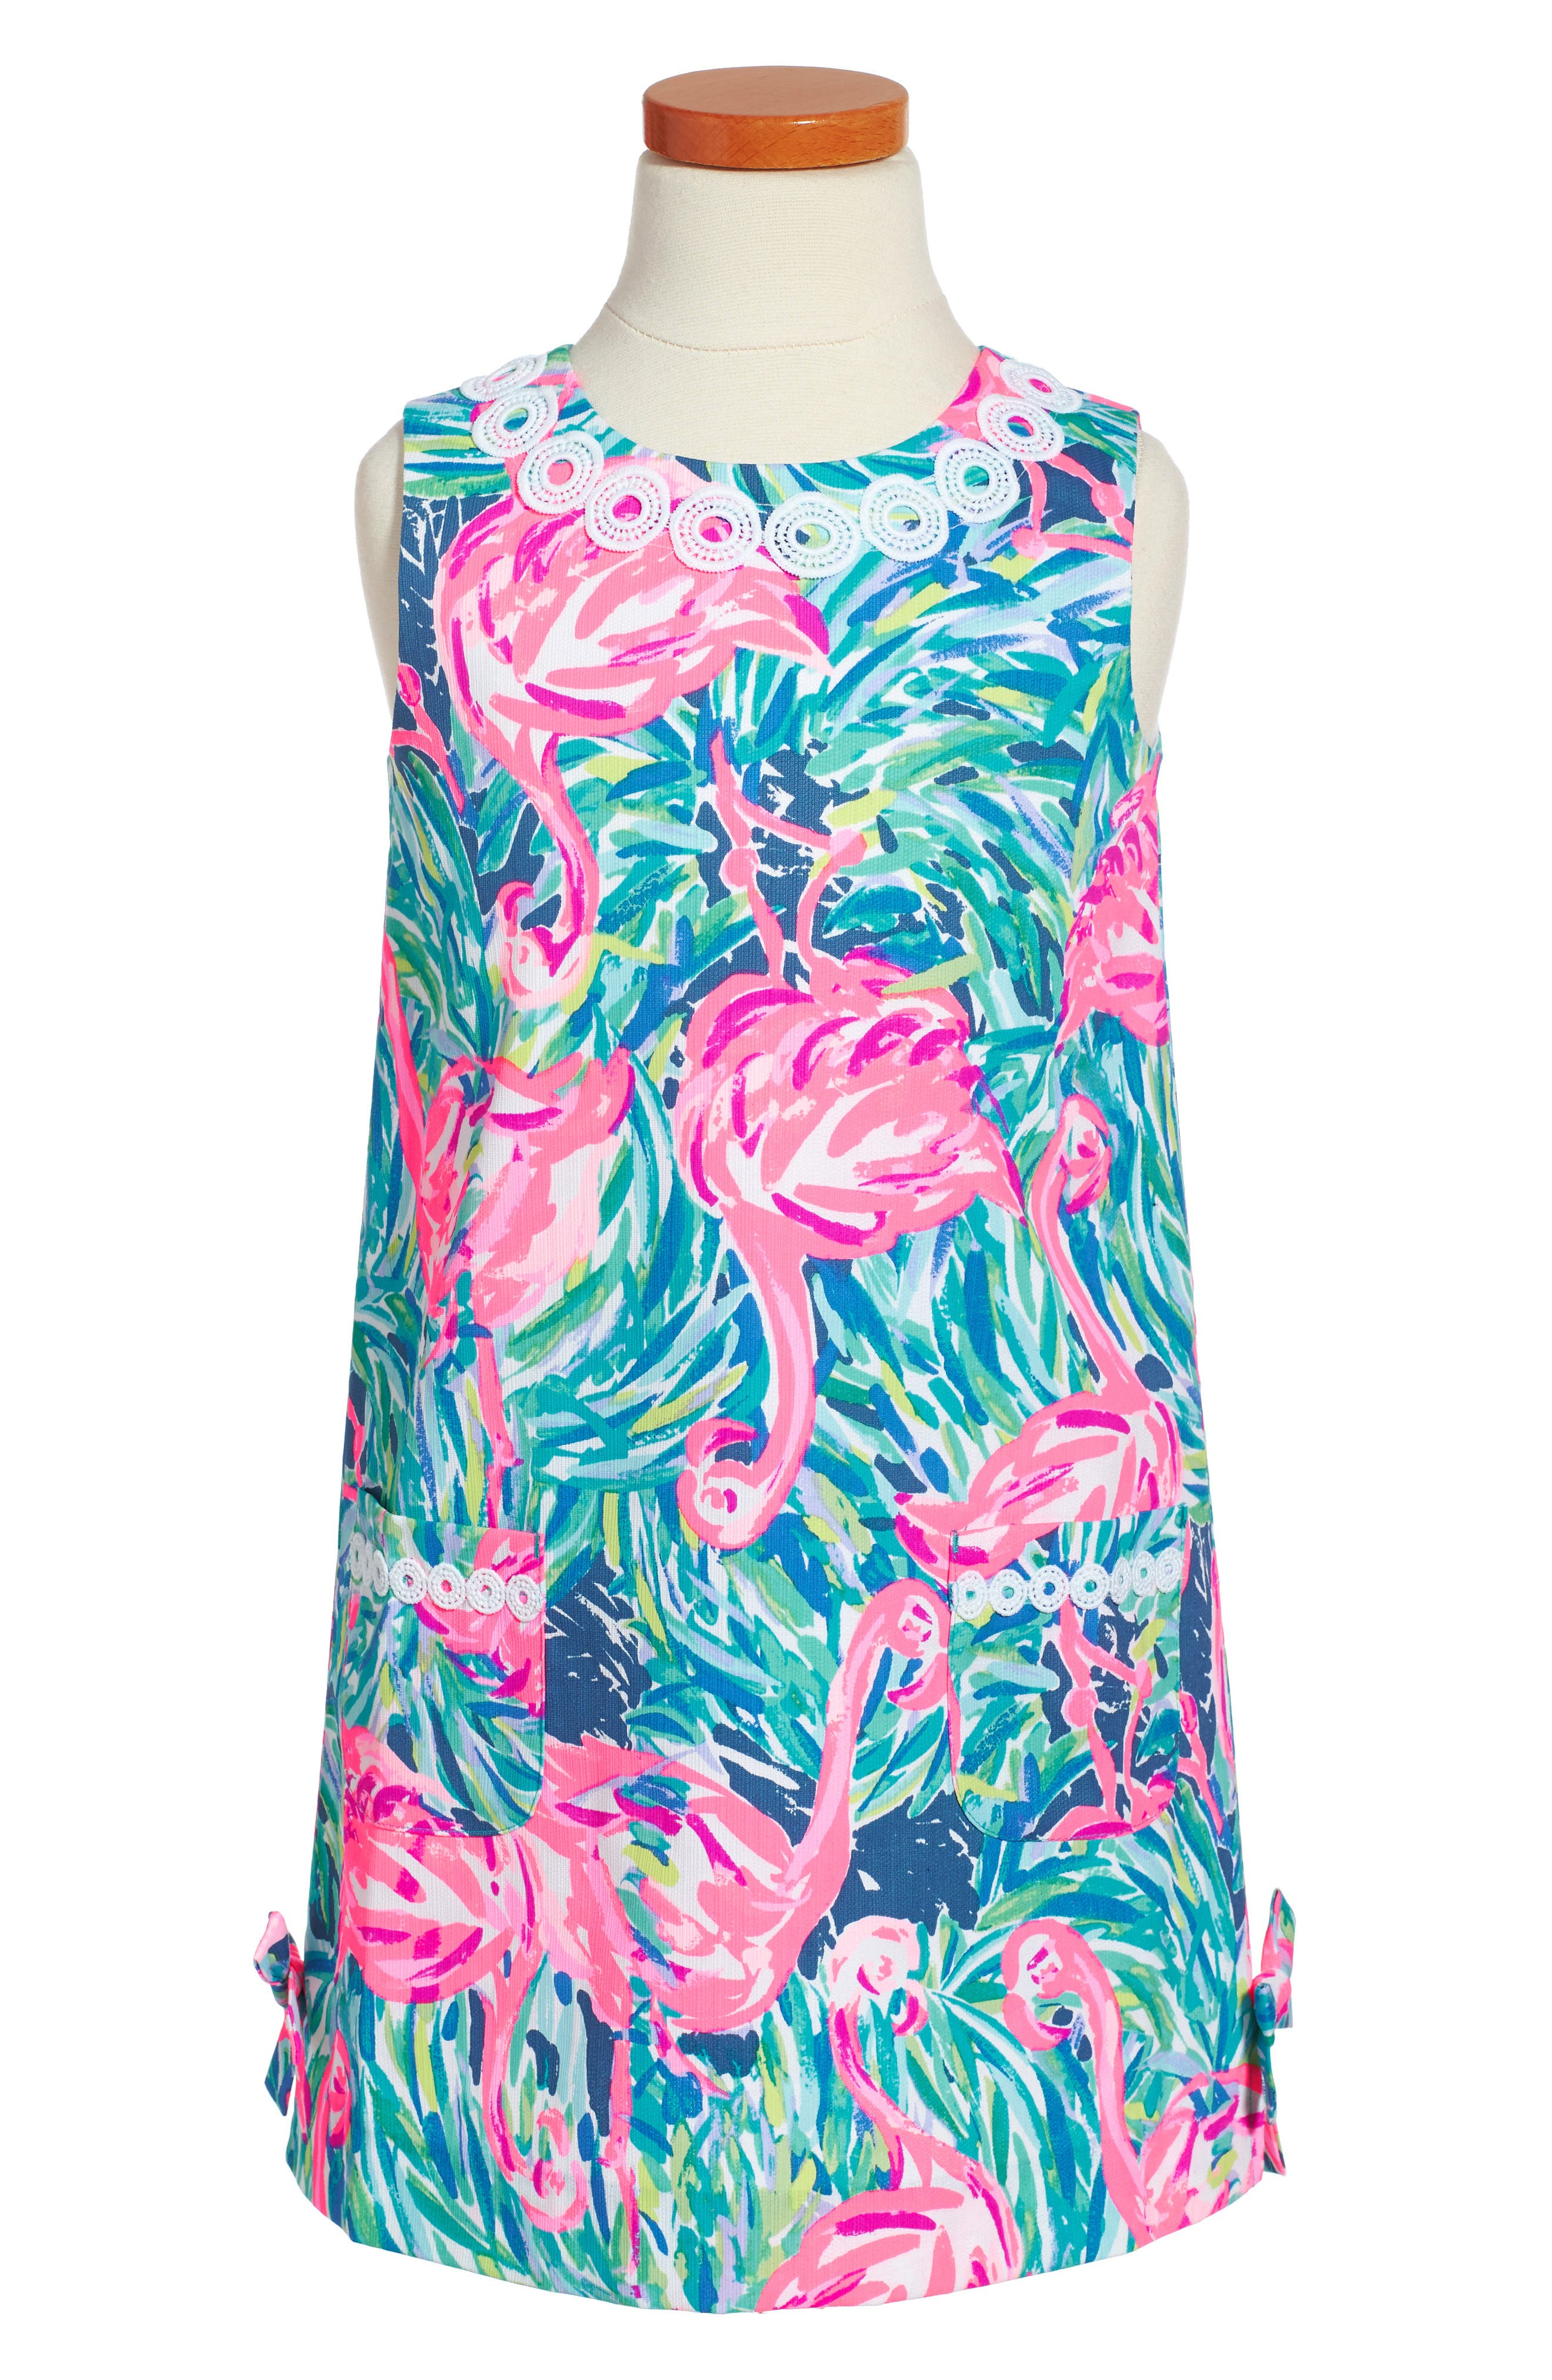 Main Image - Lilly Pulitzer® Classic Shift Dress (Toddler Girls, Little Girls & Big Girls)